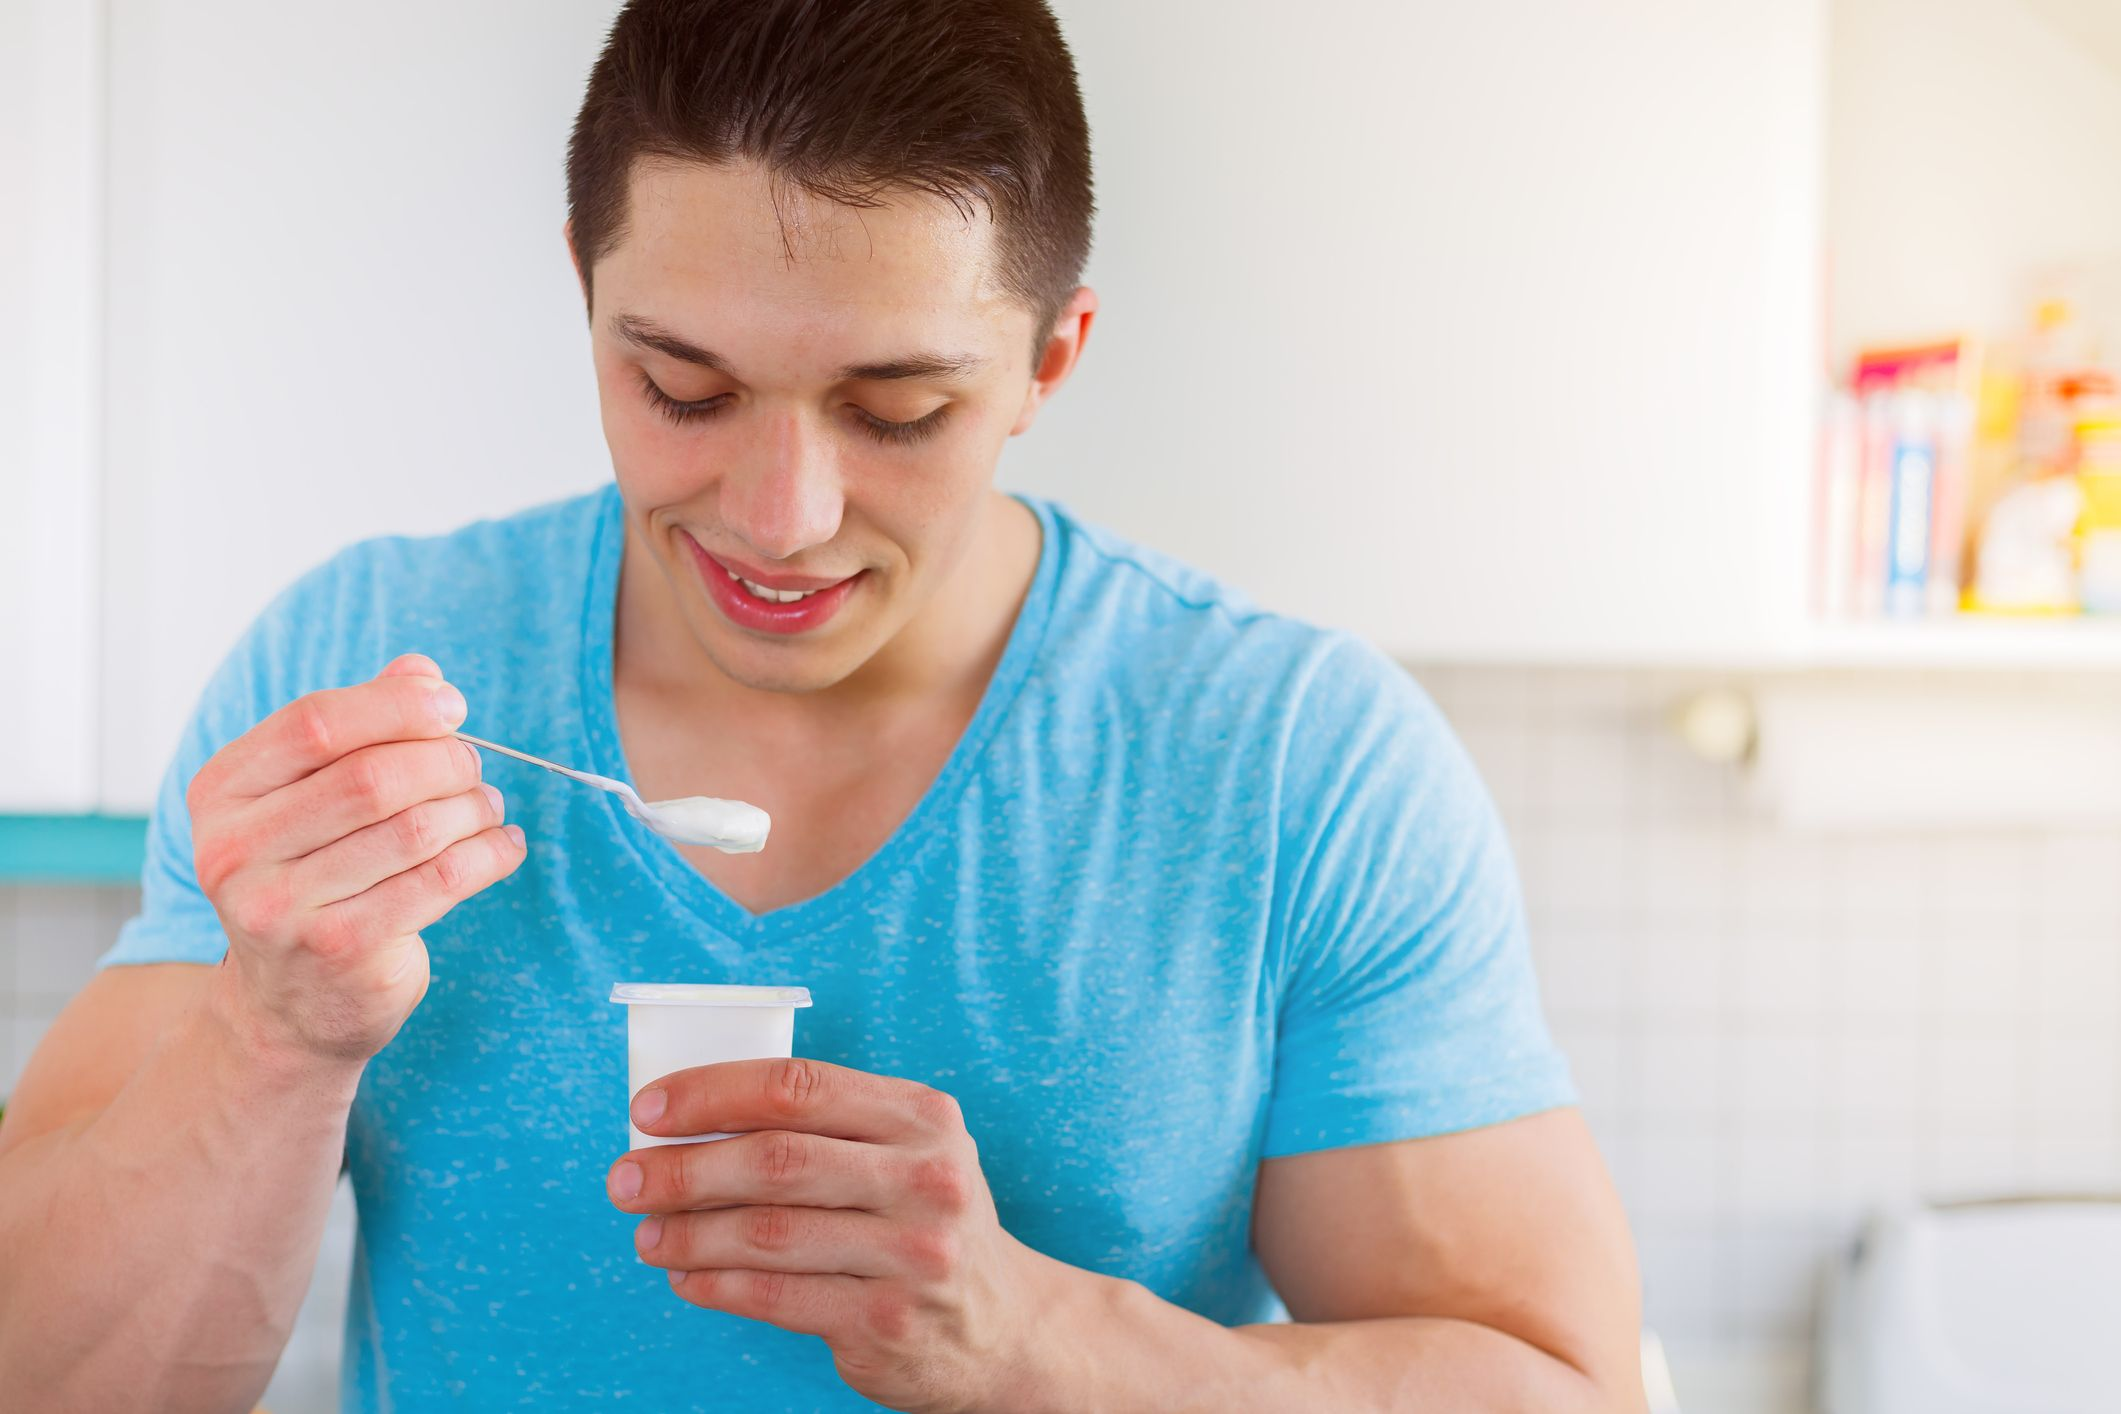 probiotics and weight loss - do probiotic foods help you lose weight?